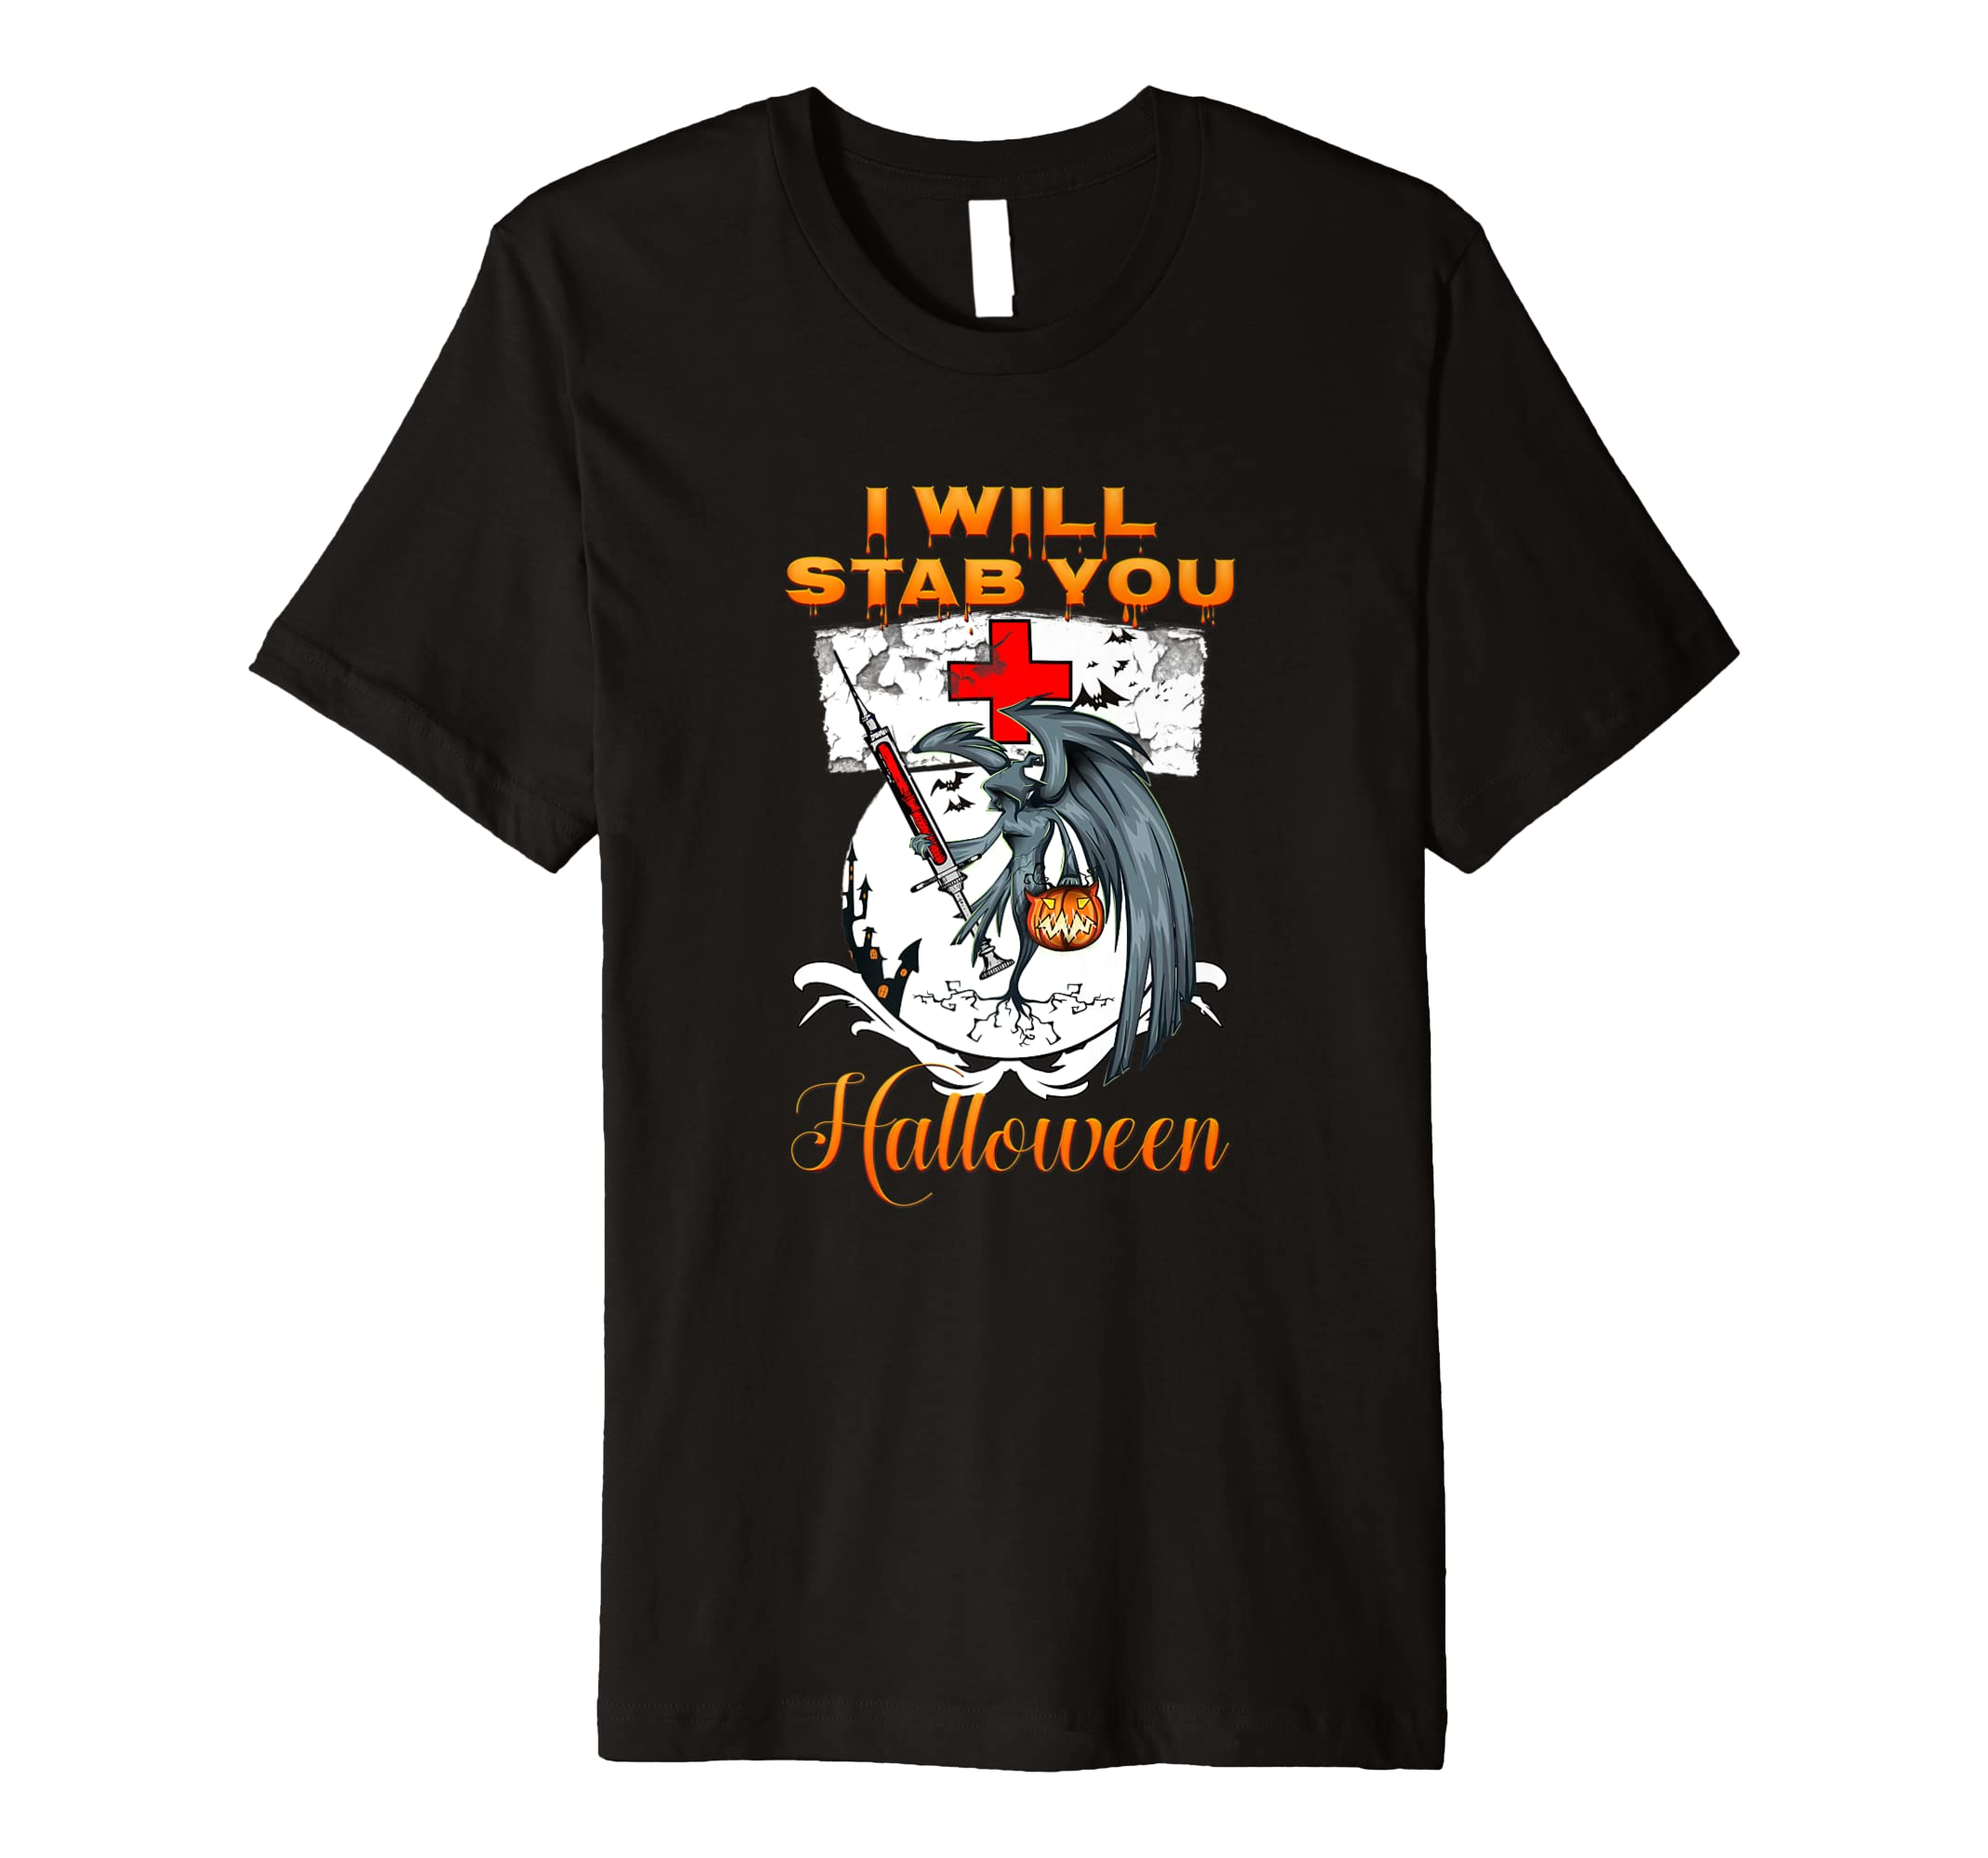 66c6a55c Amazon.com: I Will Stab You Shirt Funny Nurse Shirt: Clothing